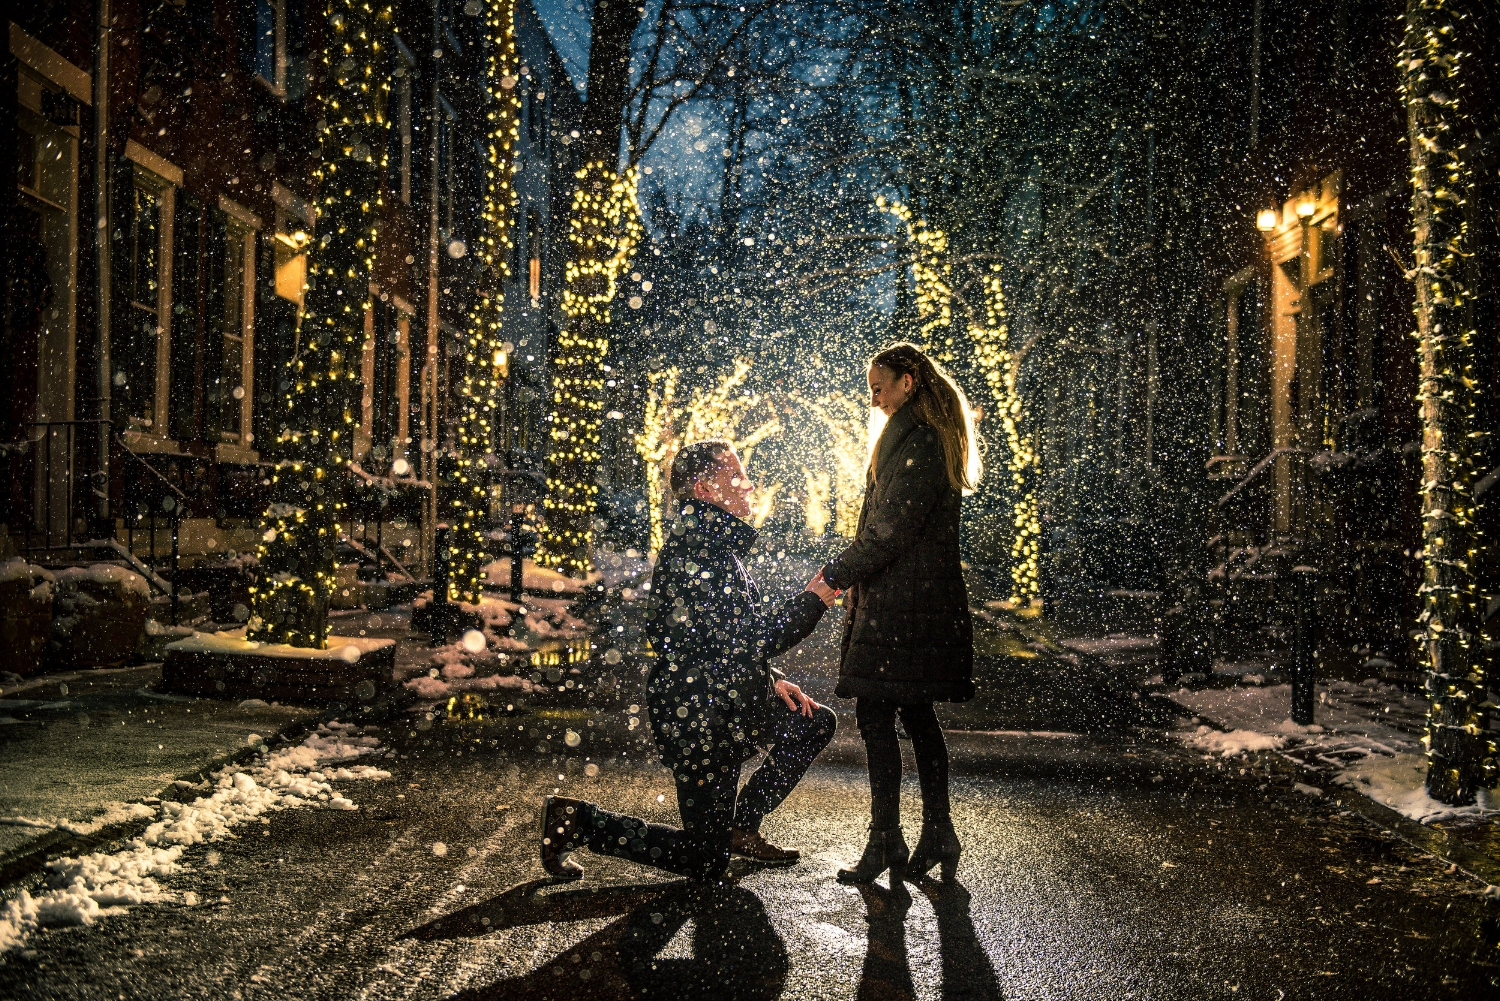 snowy-night-proposal-addison-street-philly